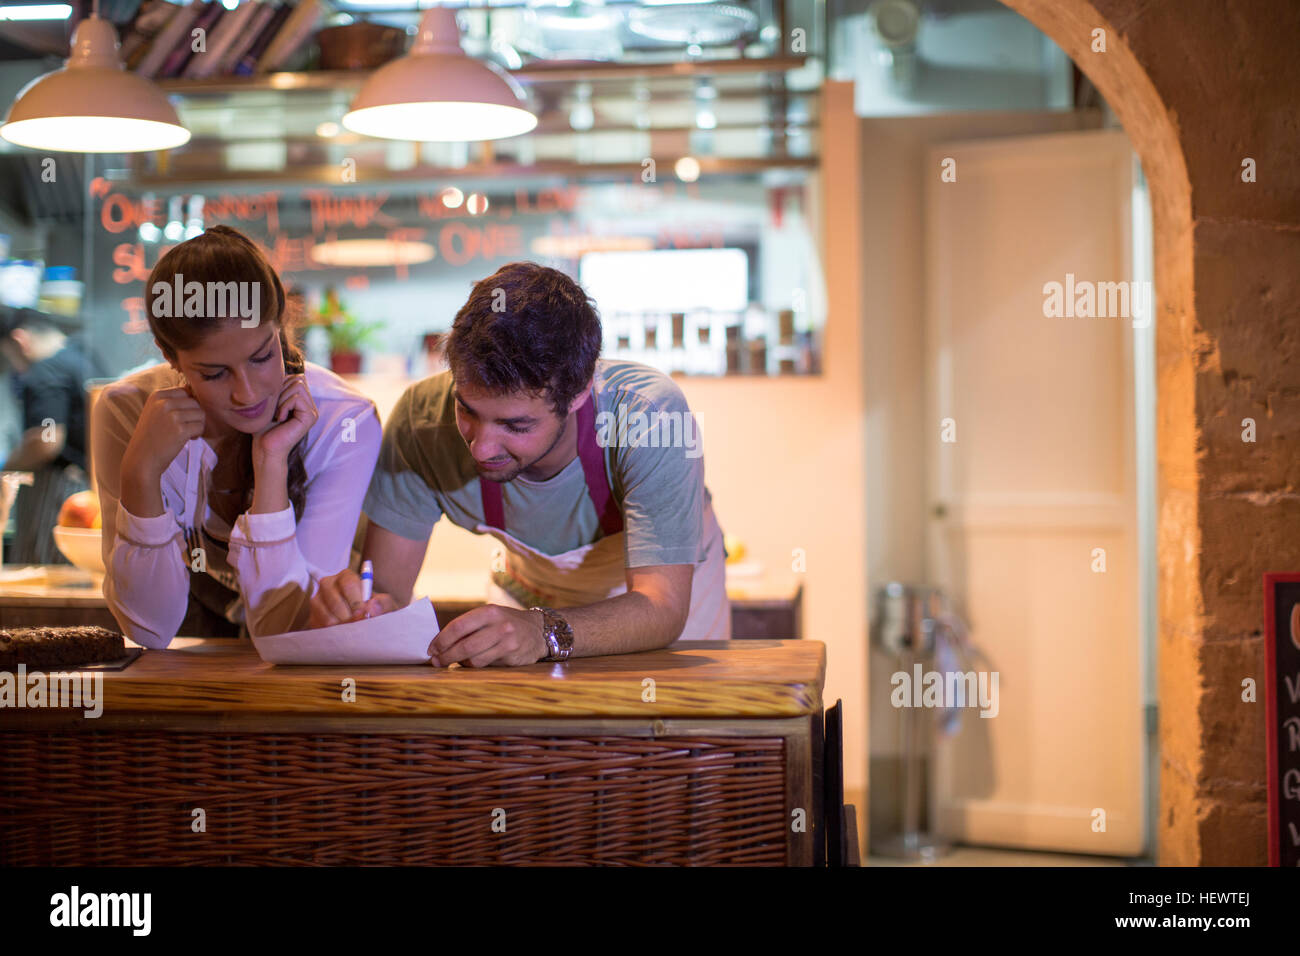 Restaurant owners working in kitchen Stock Photo